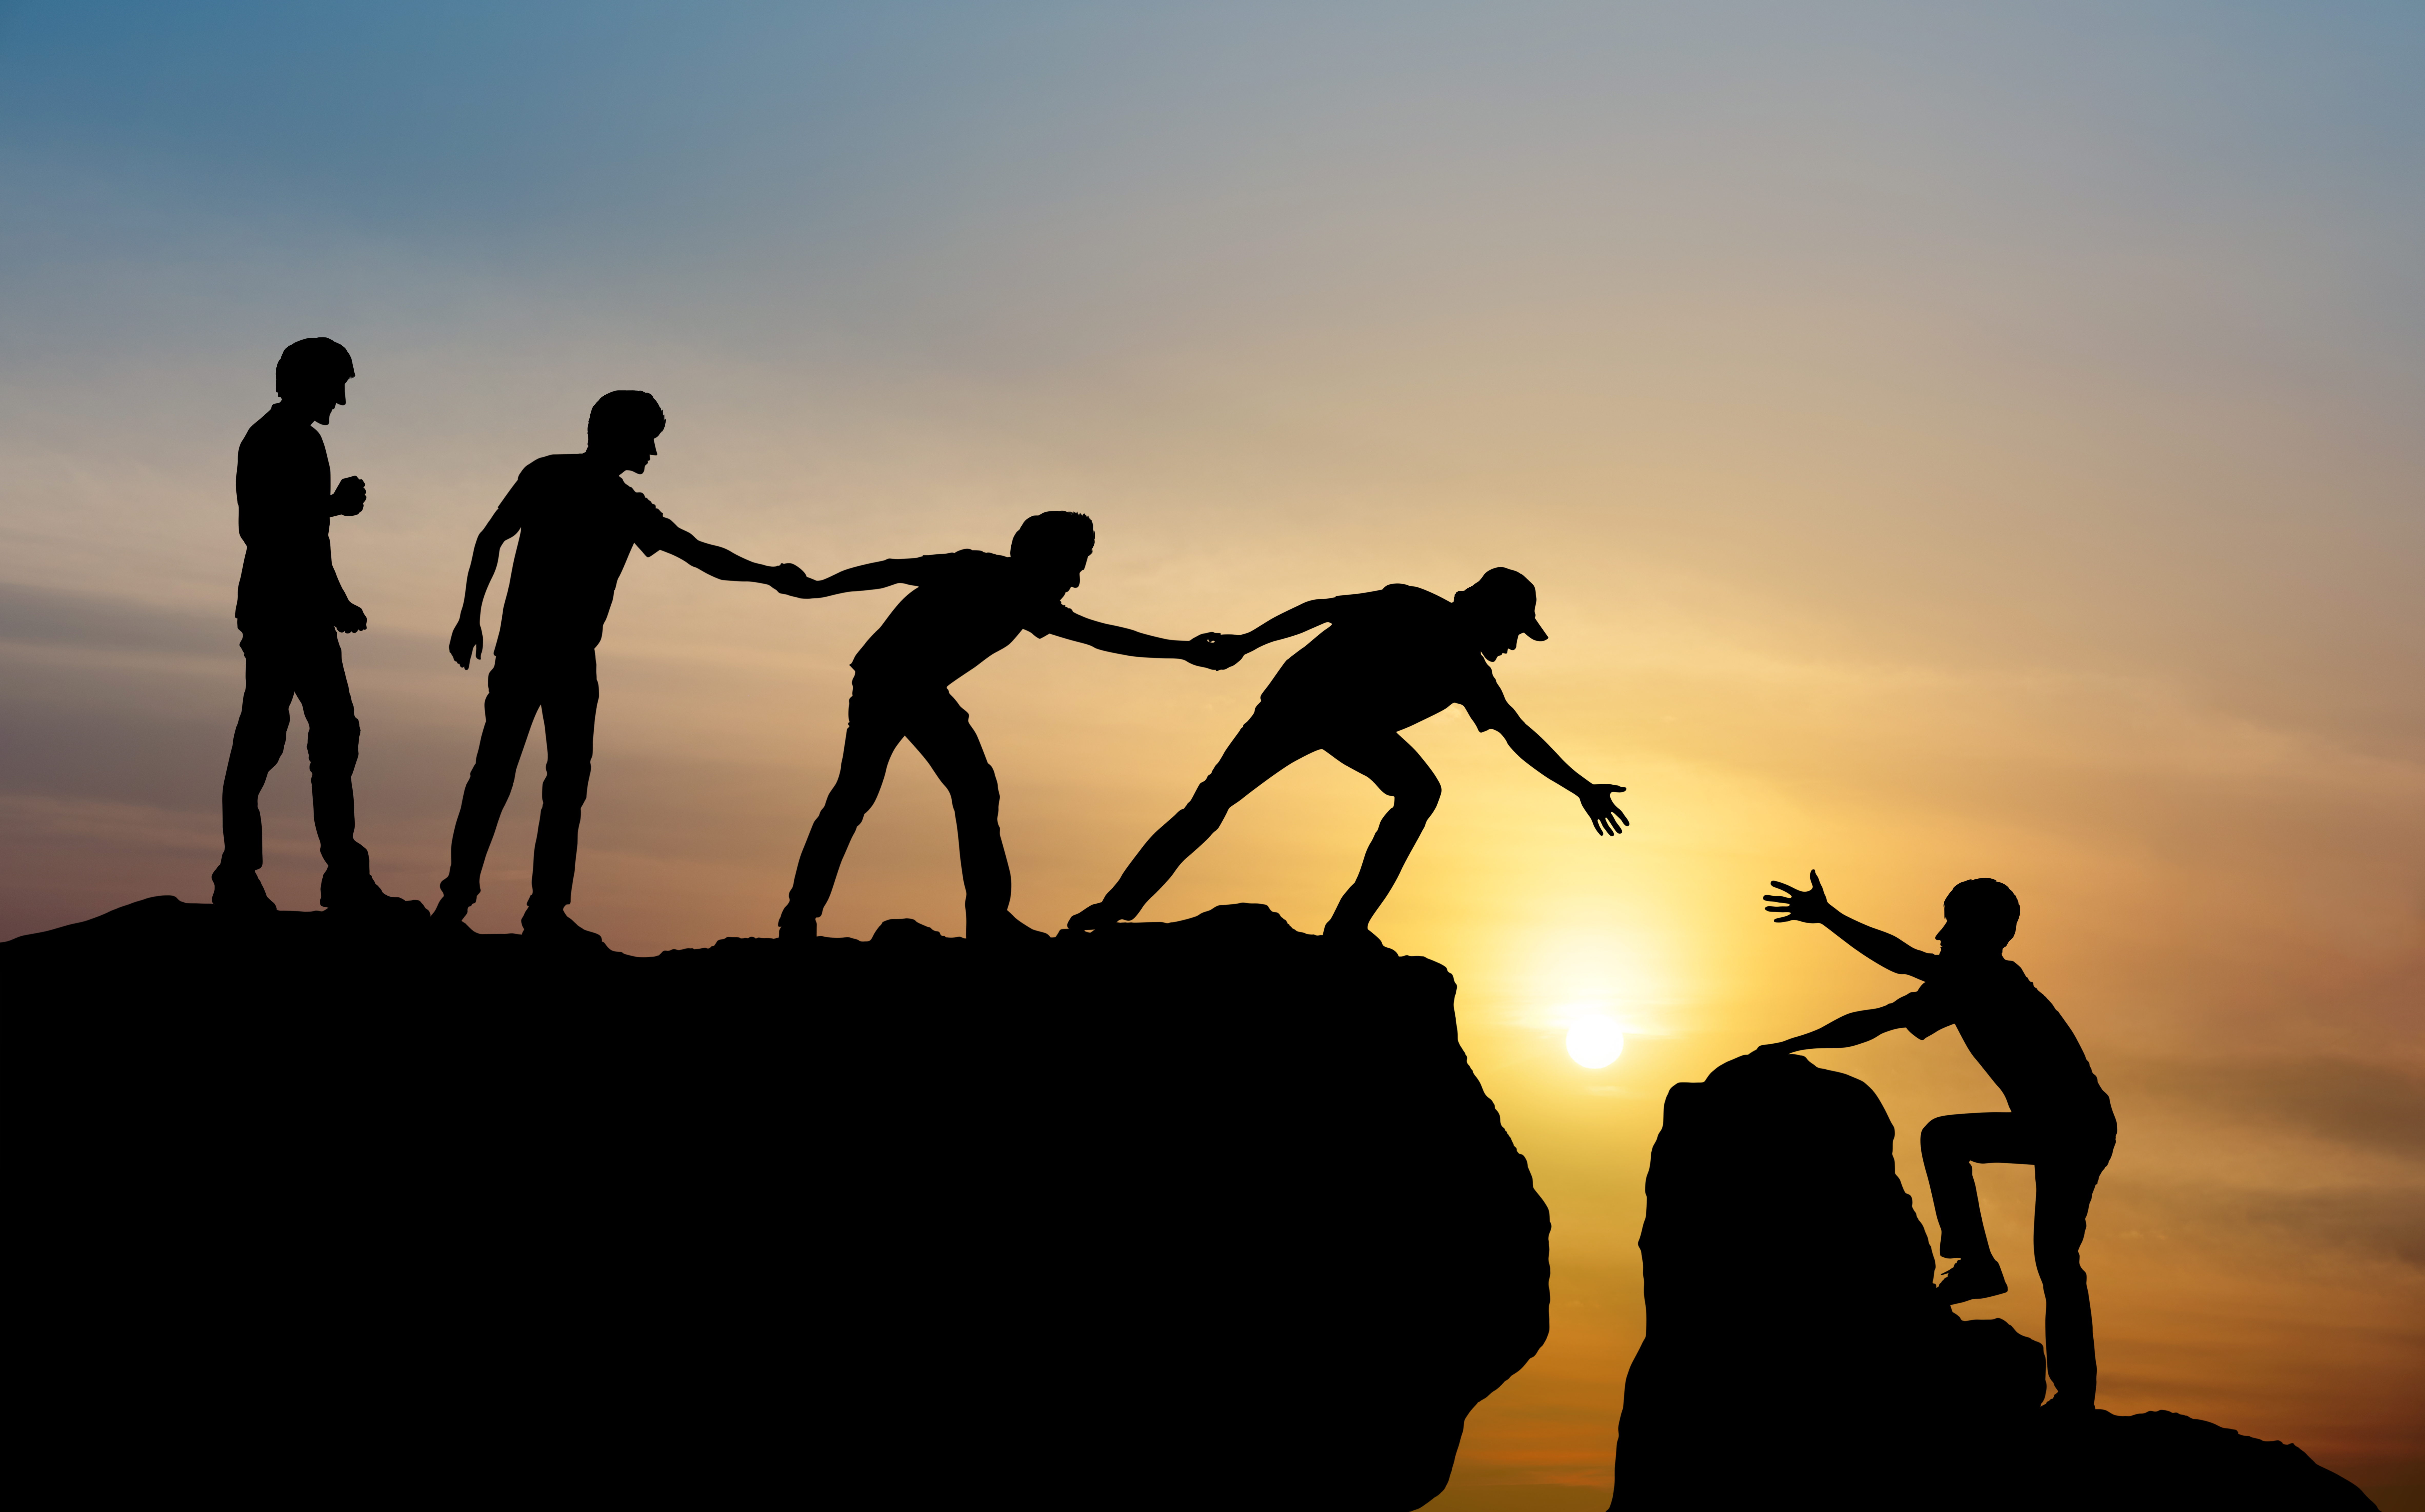 Strengths-based Leadership: Leveraging Personal and Team Strengths for Success